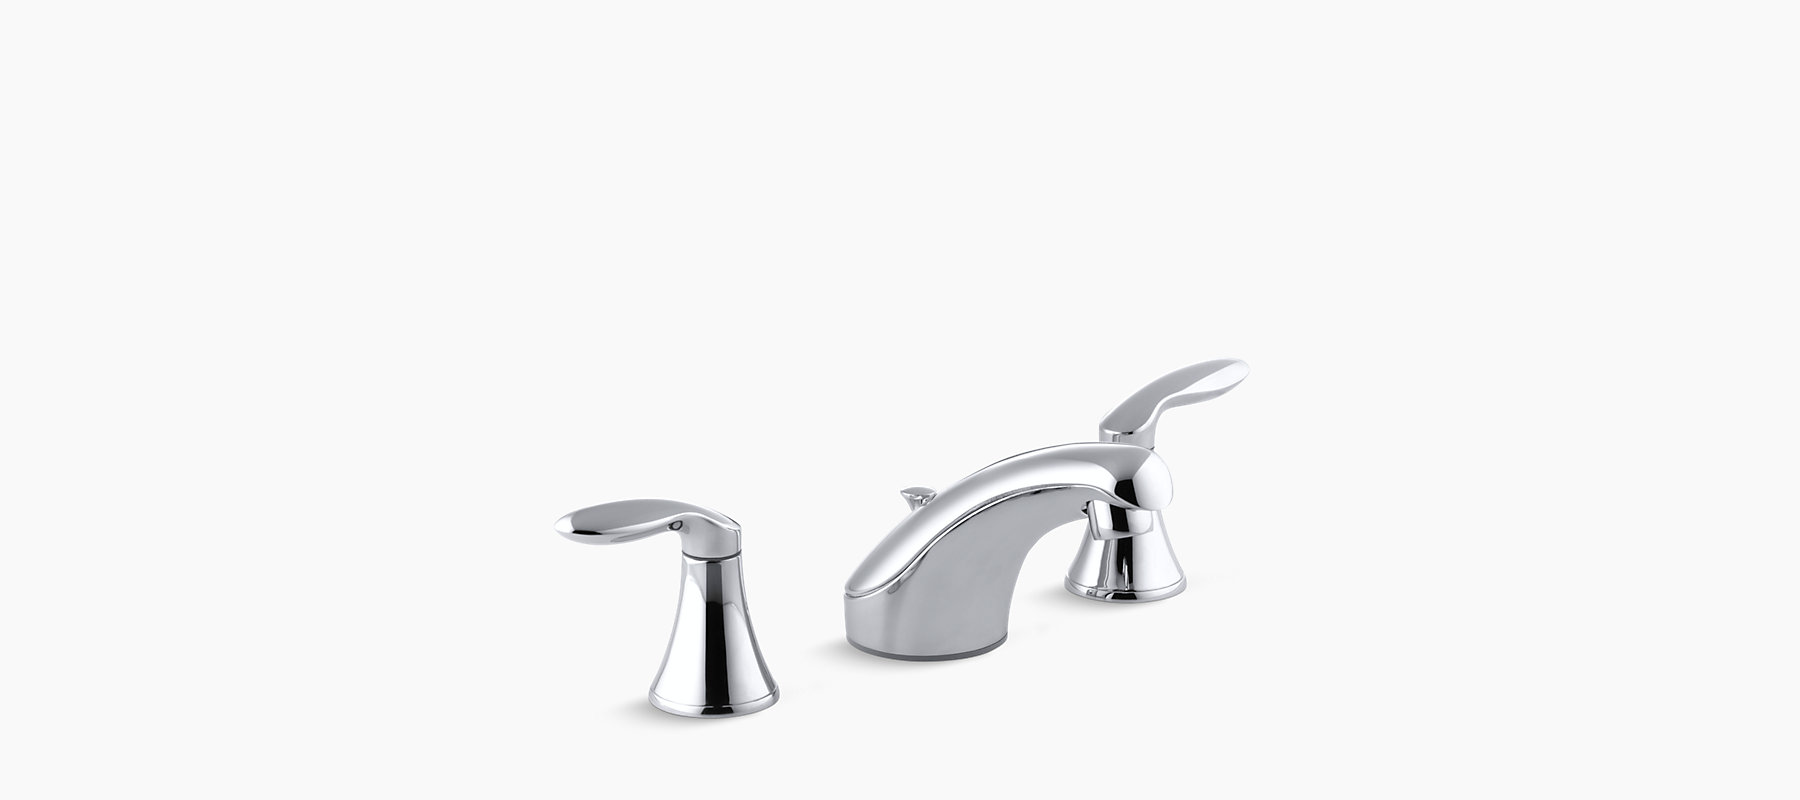 k sale sinks coralais on home and depot kohler pull faucet vs entity kitchen antique sink simplice faucets down